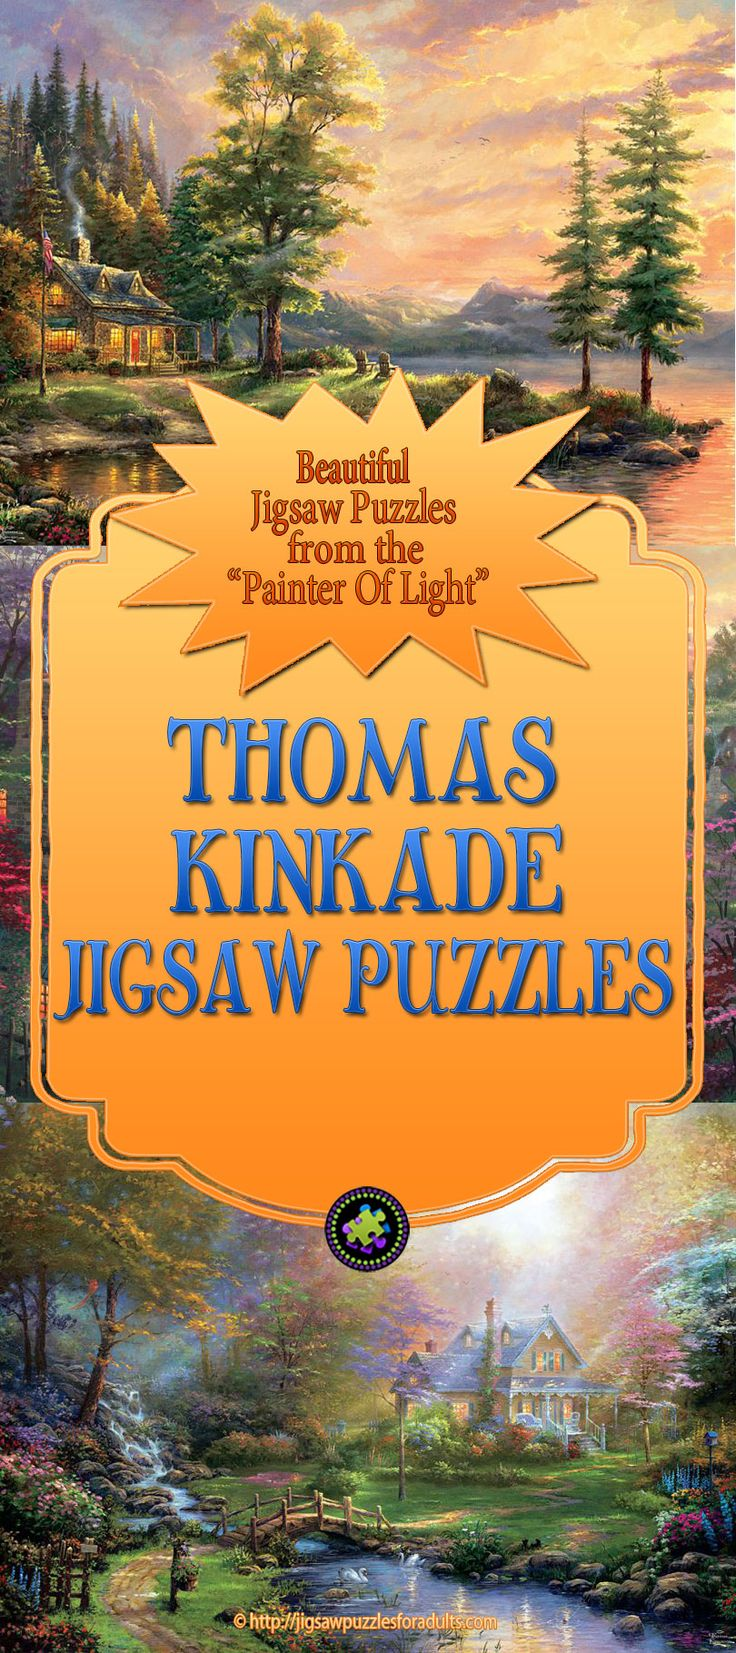 "LOVE this Large collection of absolutely beautiful Thomas Kinkade Puzzles! If you're a fan of the art of ""The Painter of Light"" Thomas Kinkade these jigsaw puzzles for adults are a must have for anyone who is an avid jigsaw puzzle enthusiast. You'll find Thomas Kinkade puzzles from 300 pieces all the way to 2000 pieces."